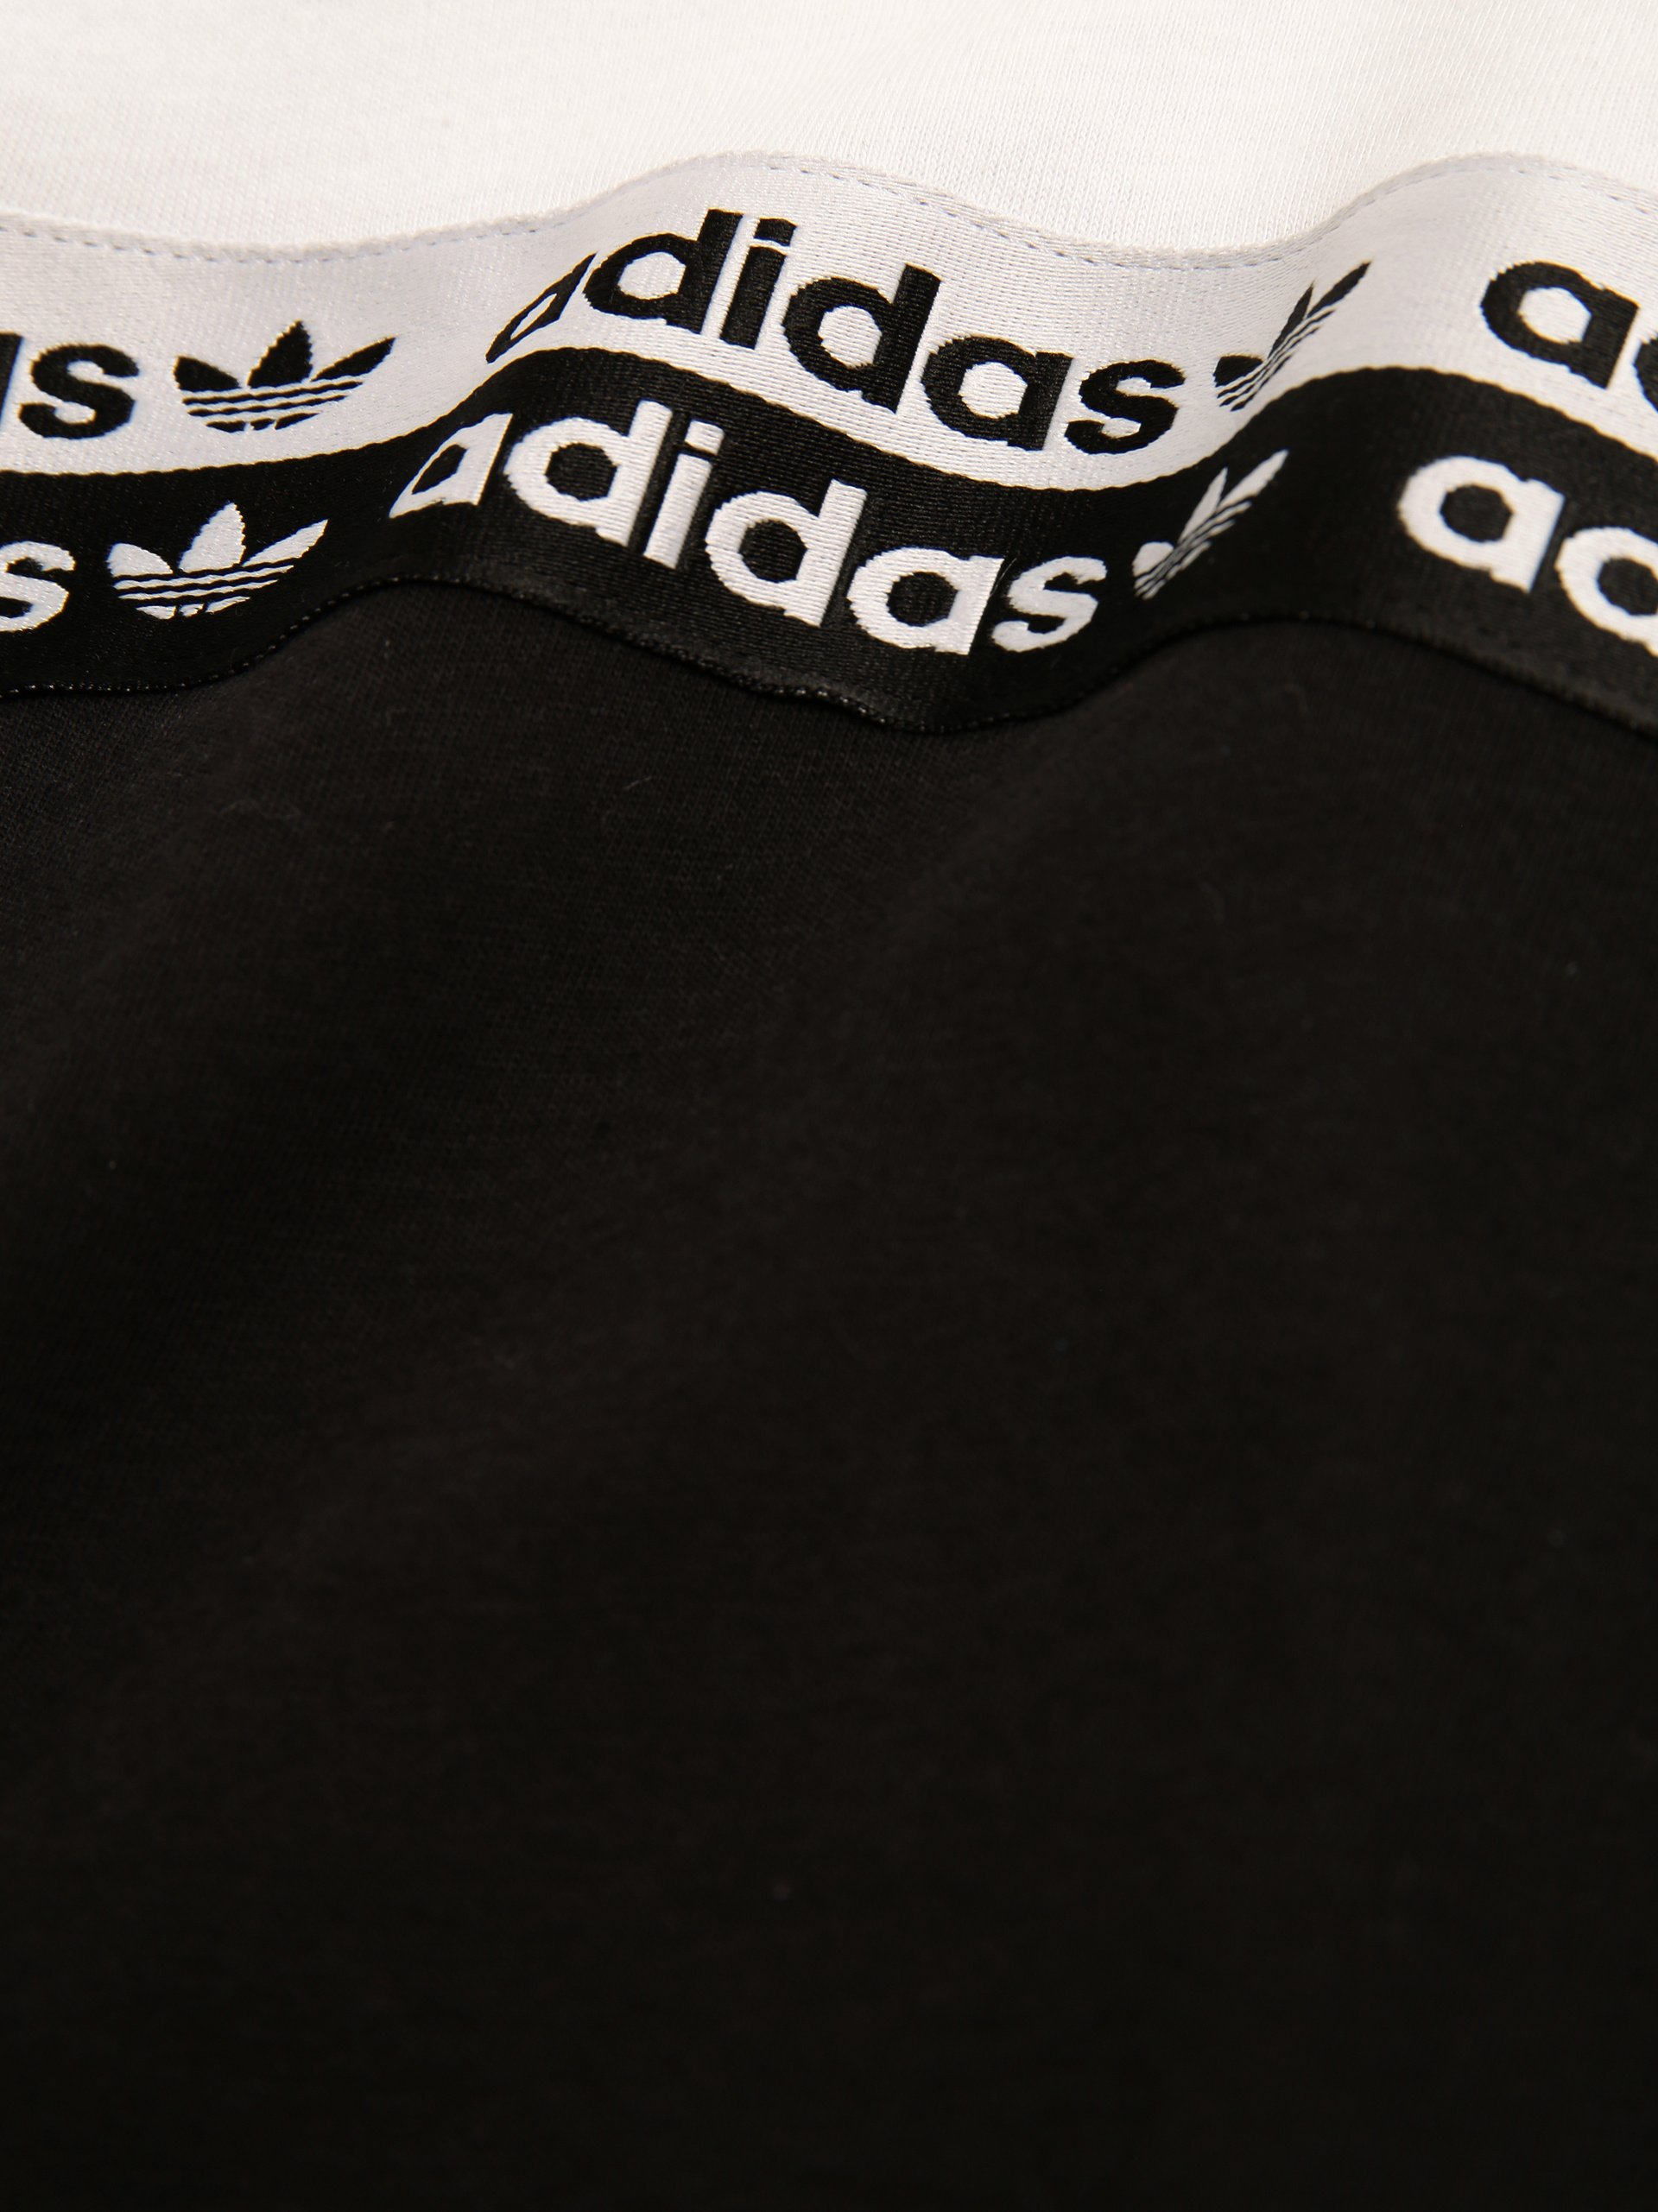 adidas Originals Jungen T-Shirt